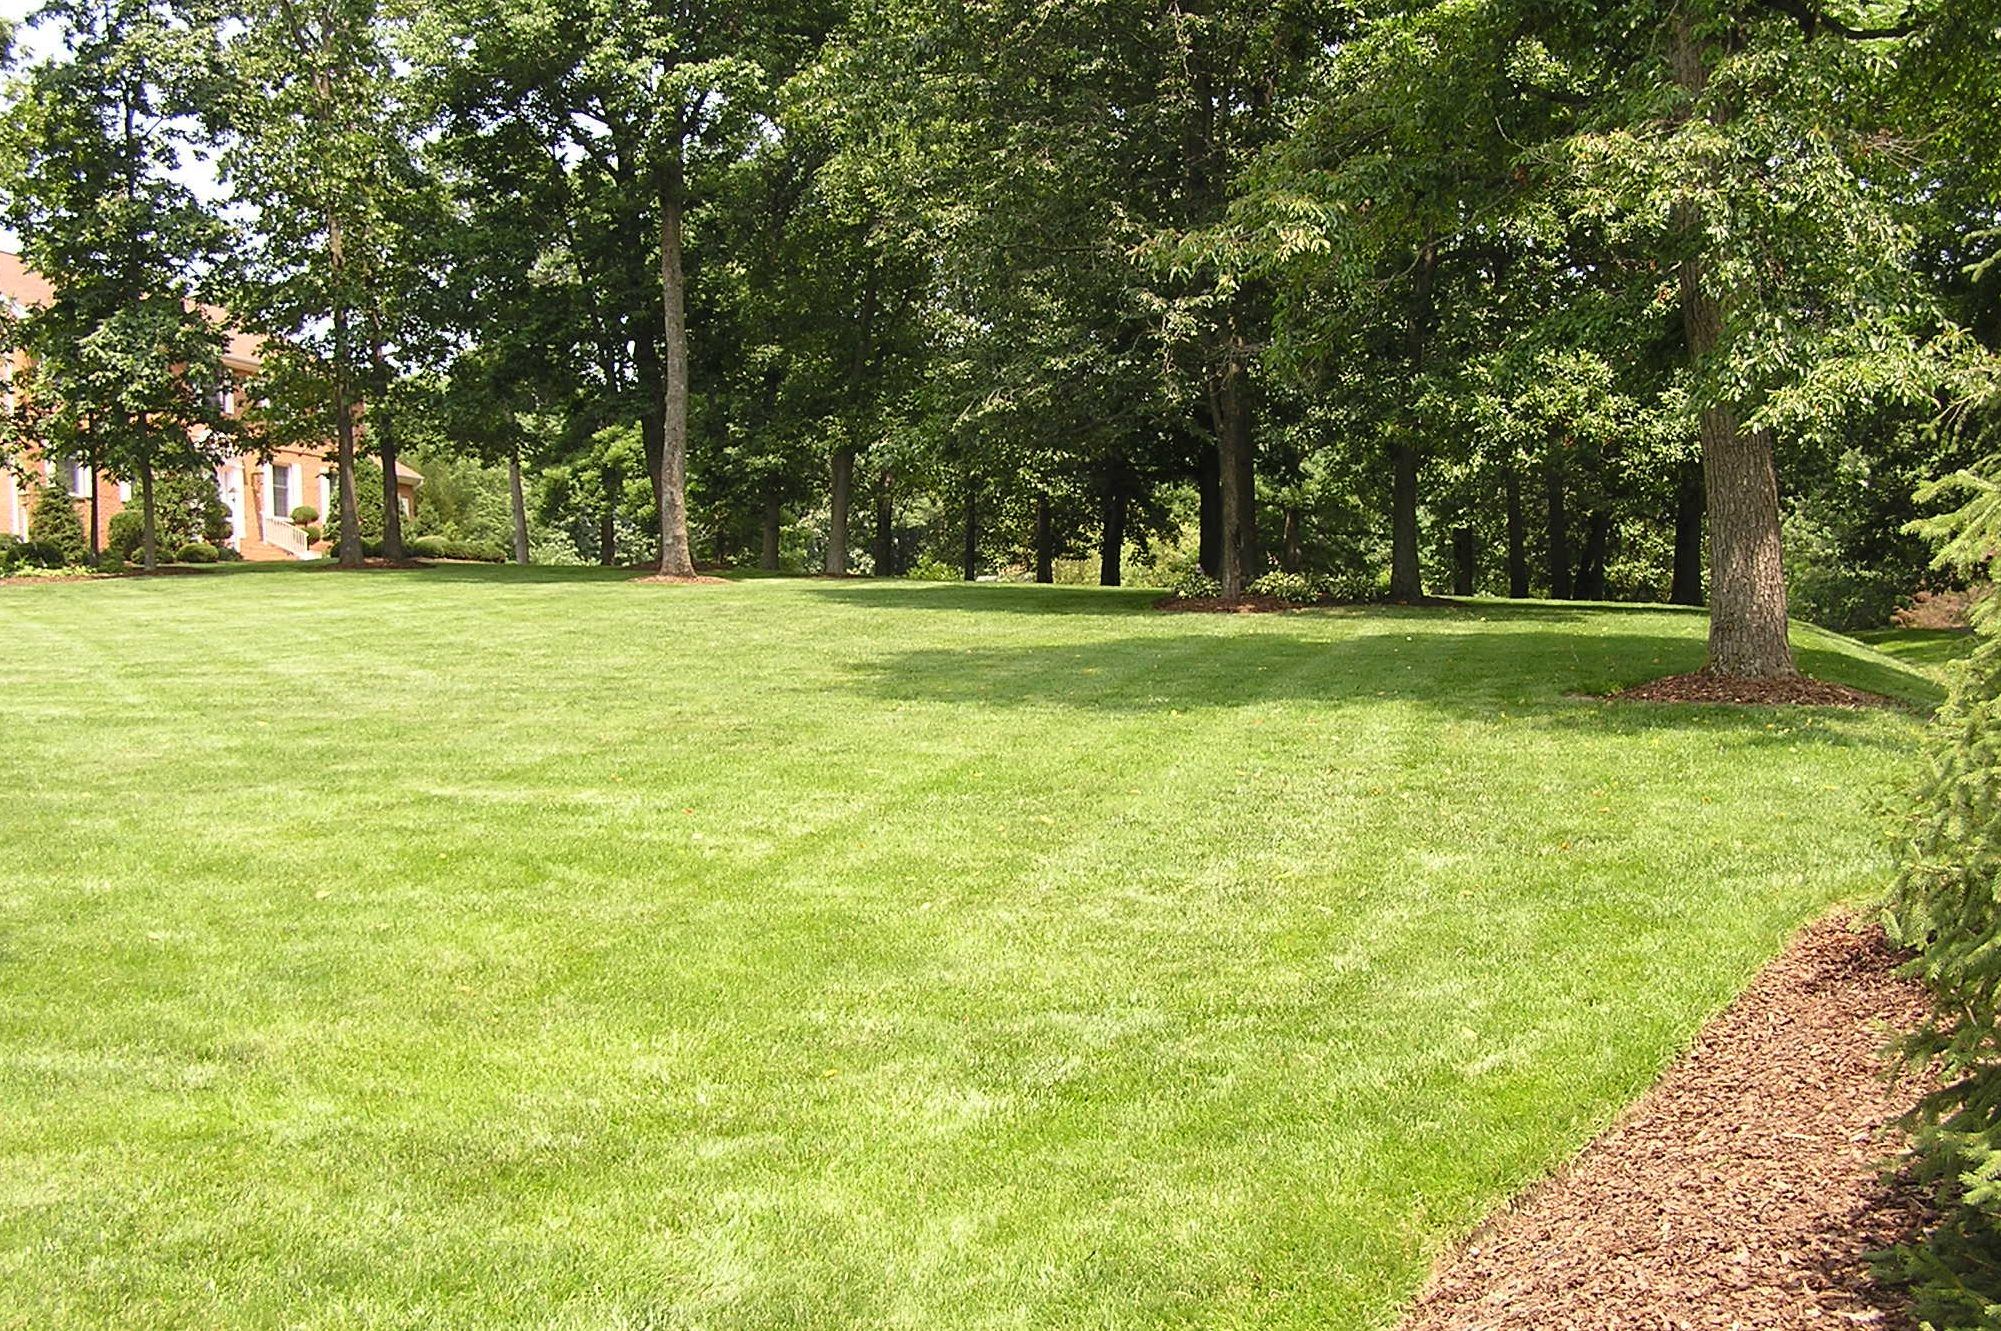 2018 Lawn Treatment Program